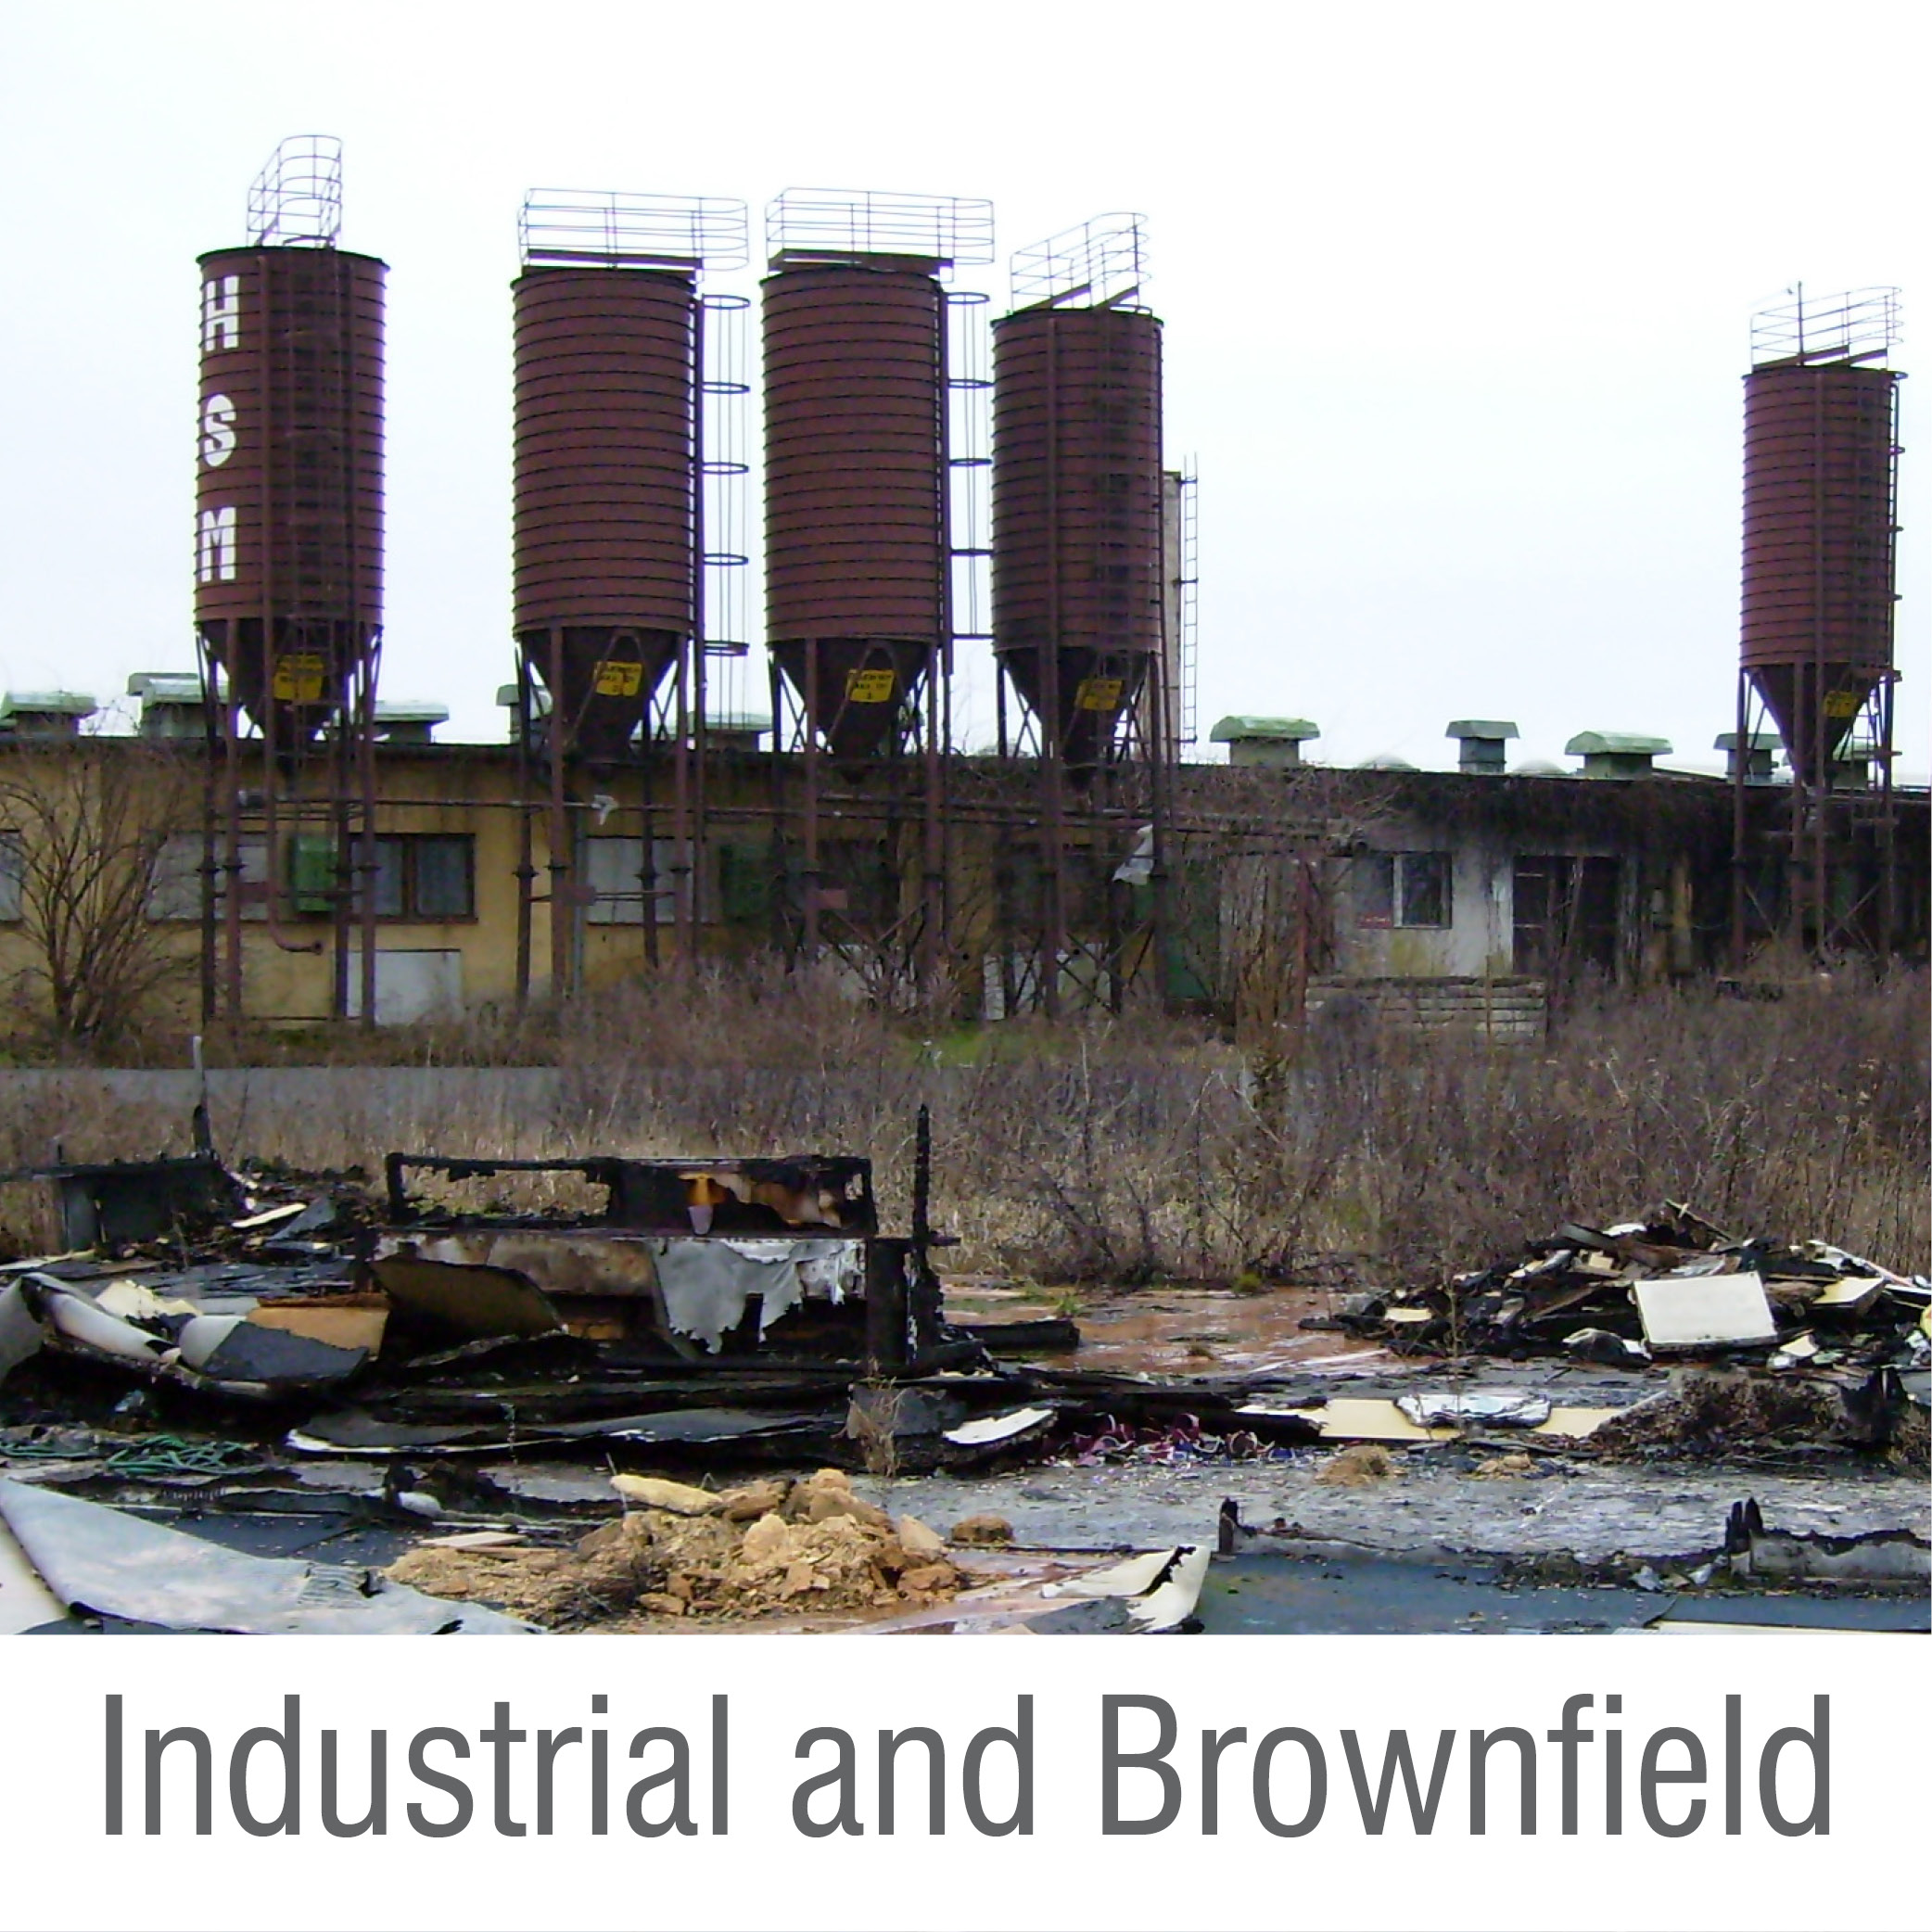 Industrial and Brownfield